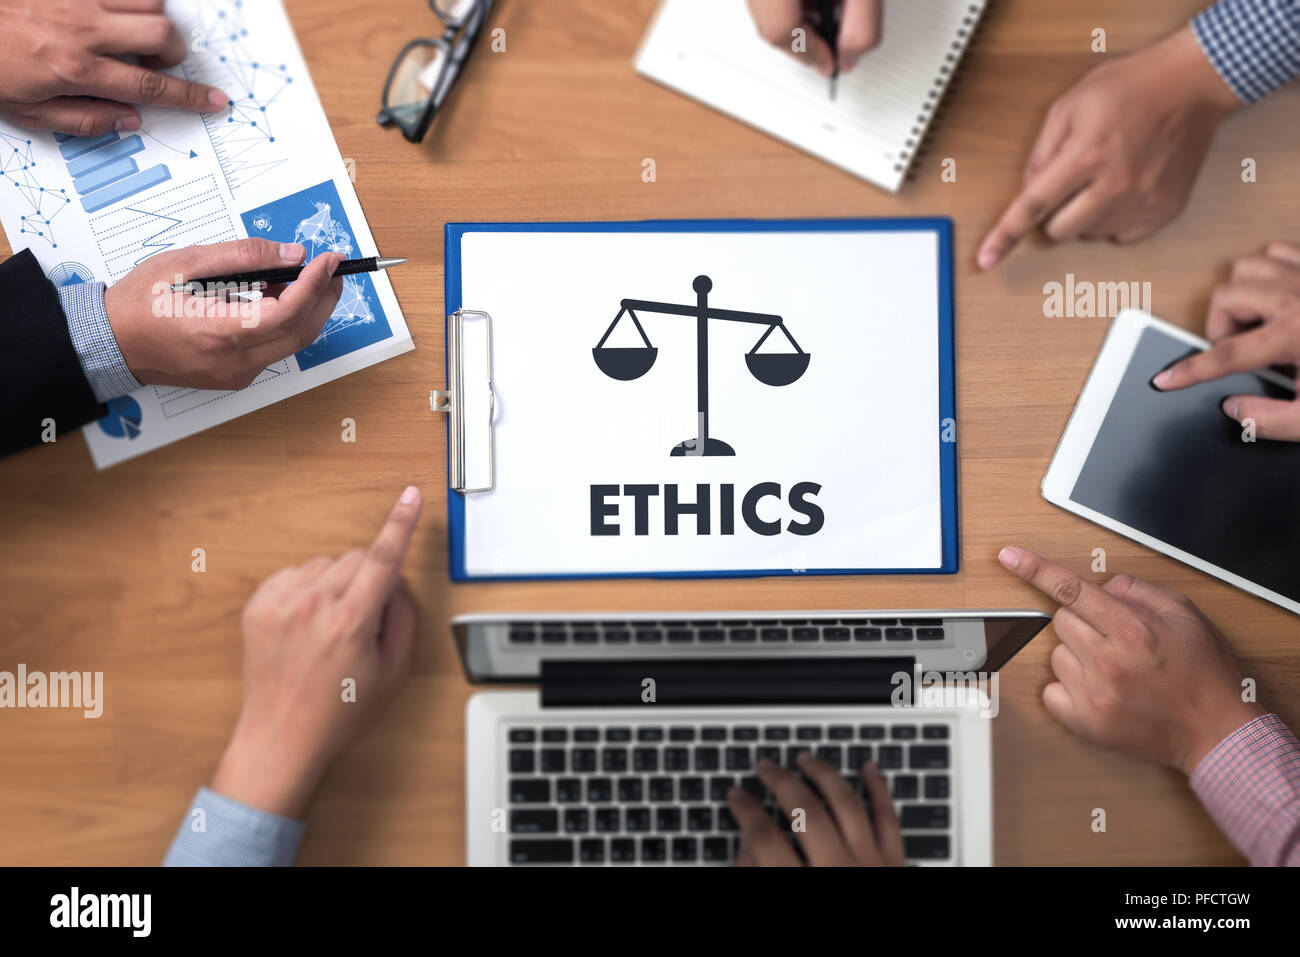 Team work and team  ethics Justice Law Order Legal - Stock Image